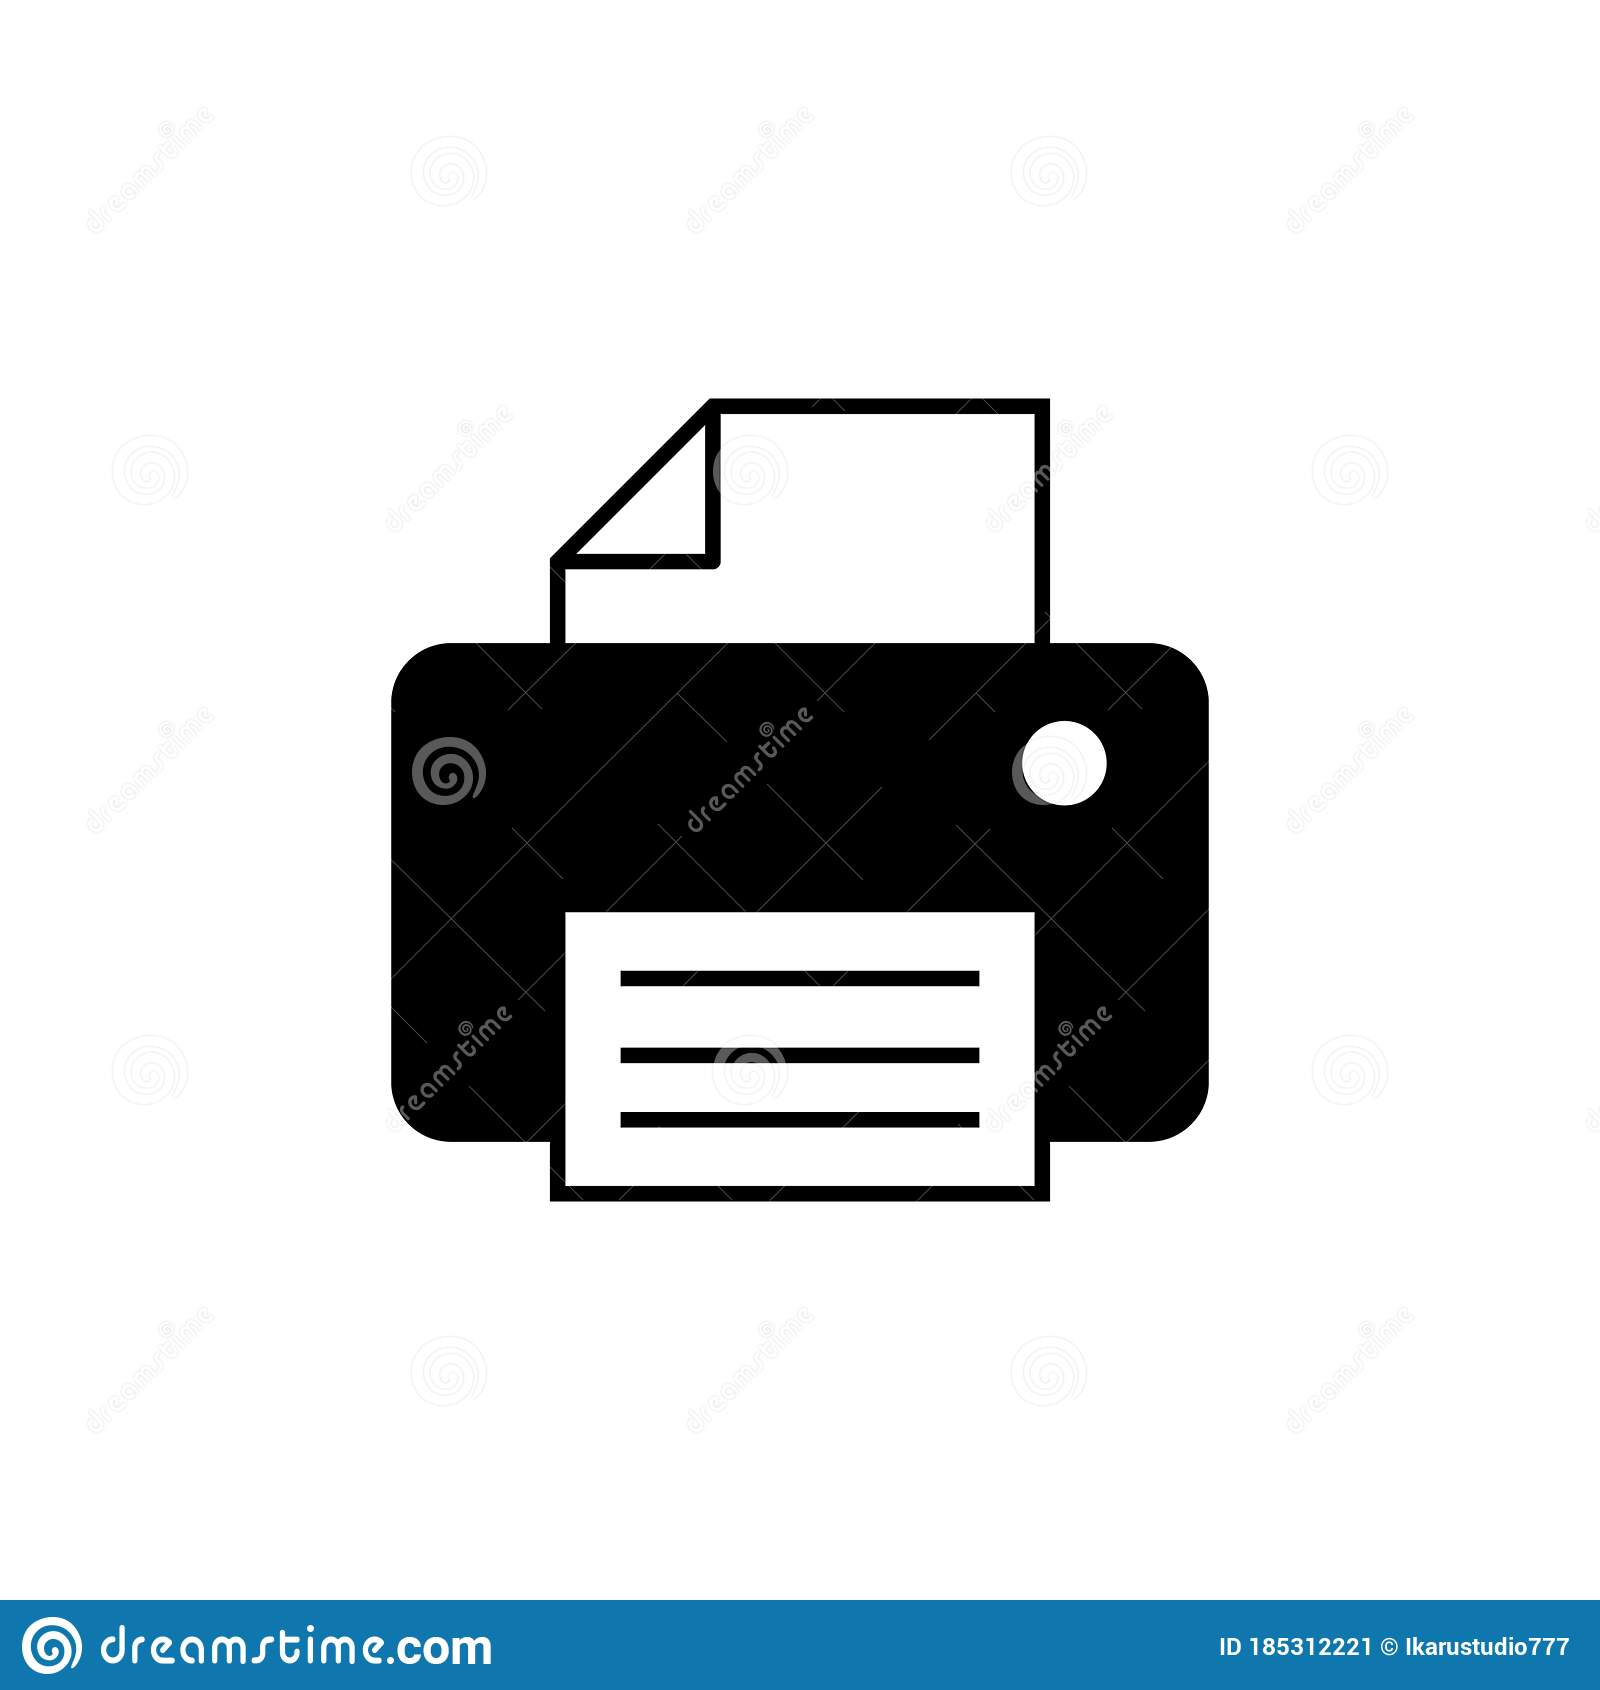 printer icon isolated on white background print icon fax vector icon stock vector illustration of paper communication 185312221 printer icon isolated on white background print icon fax vector icon stock vector illustration of paper communication 185312221